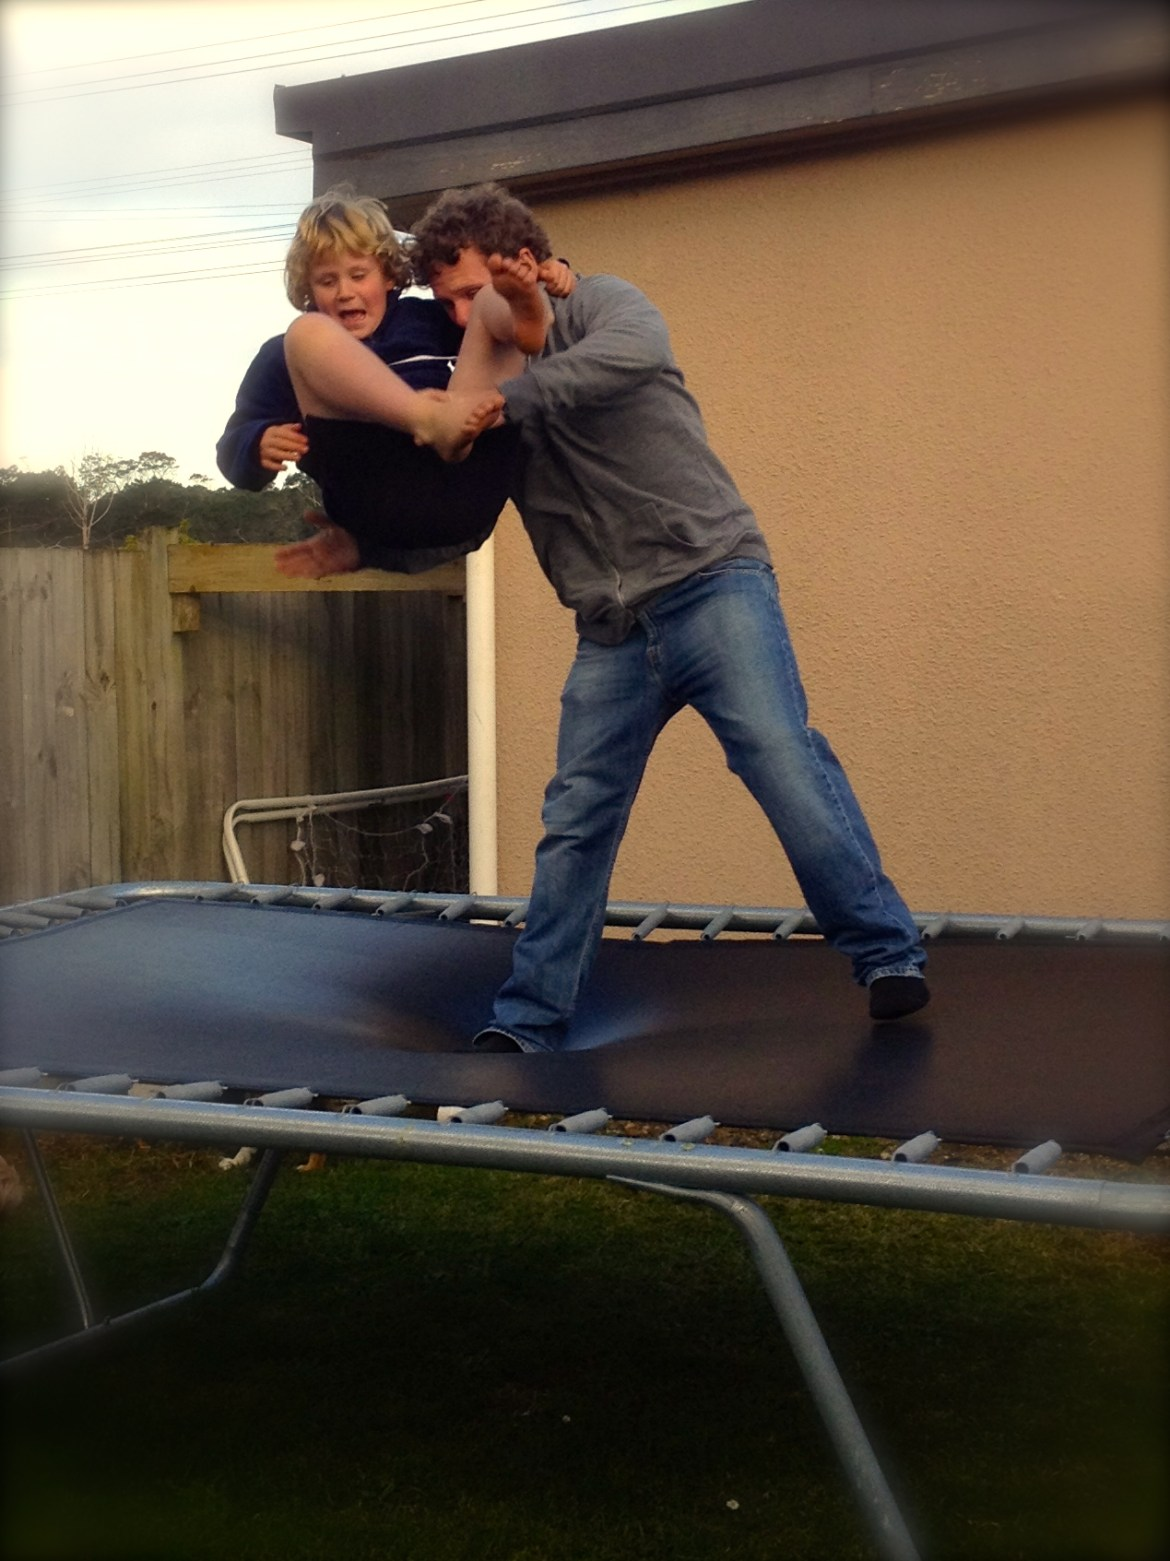 Playing on the tramp